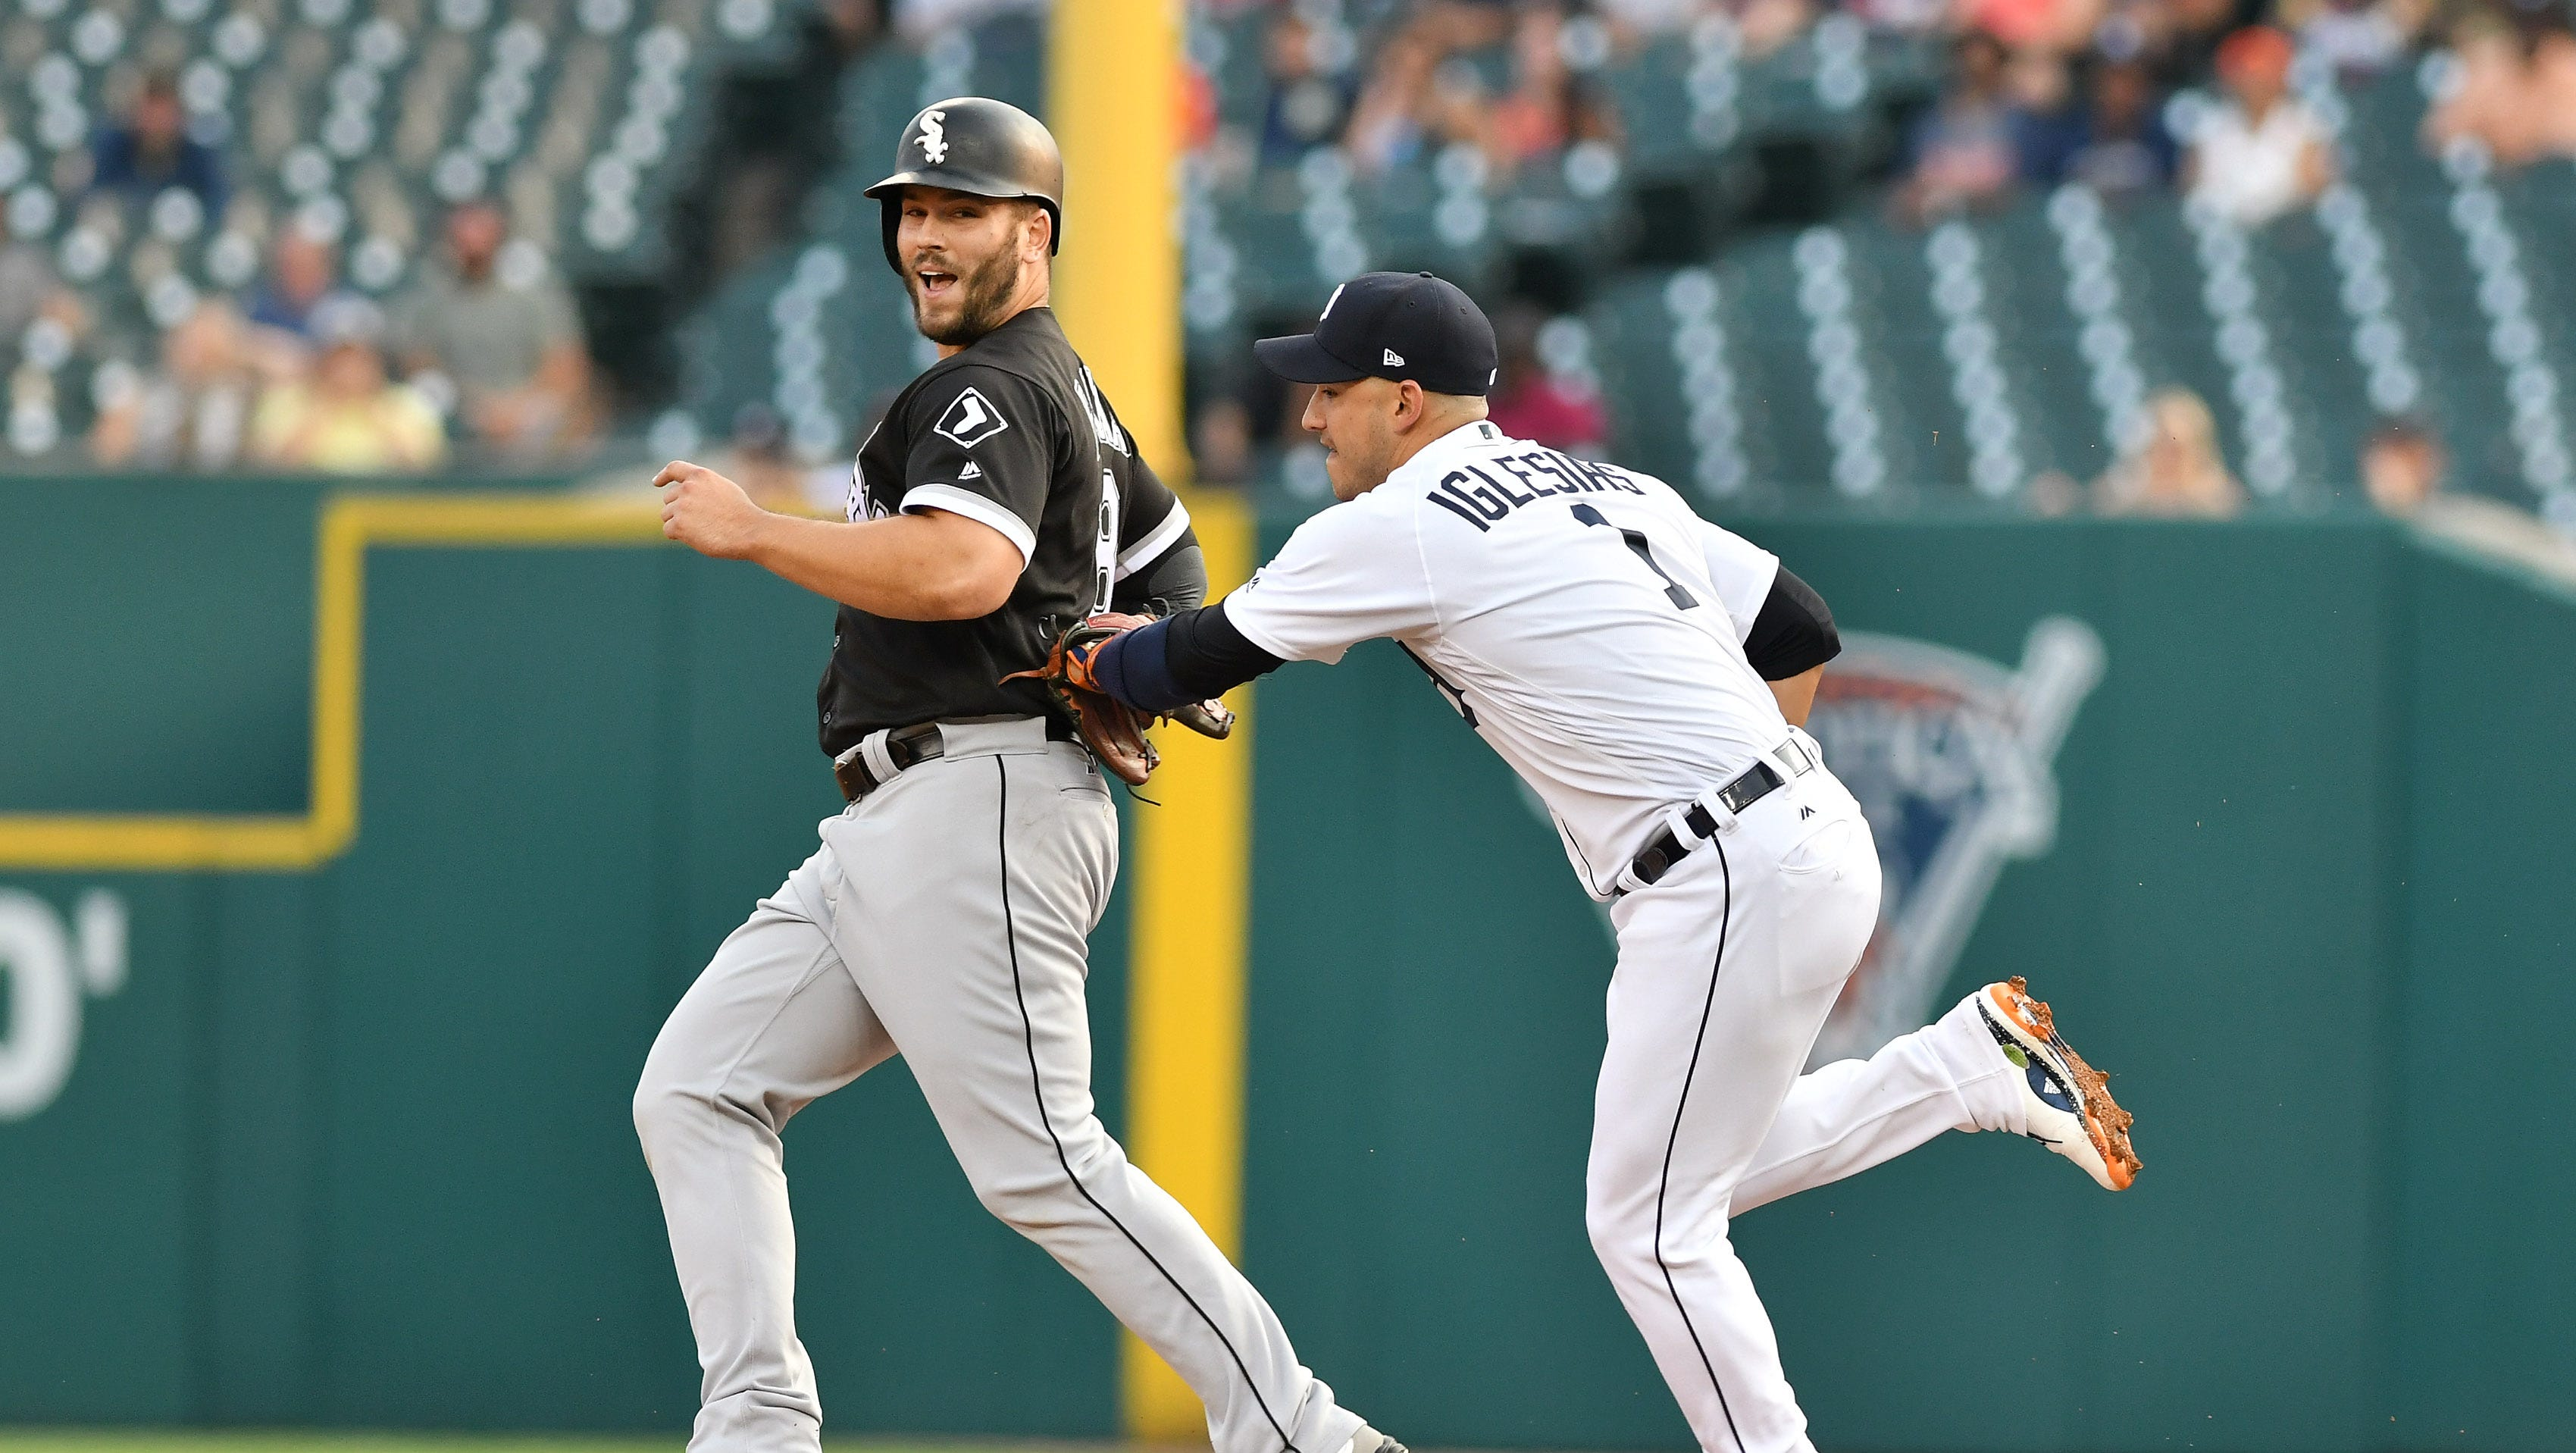 'Bad News Bears': Crazy play sets tone in Tigers' loss